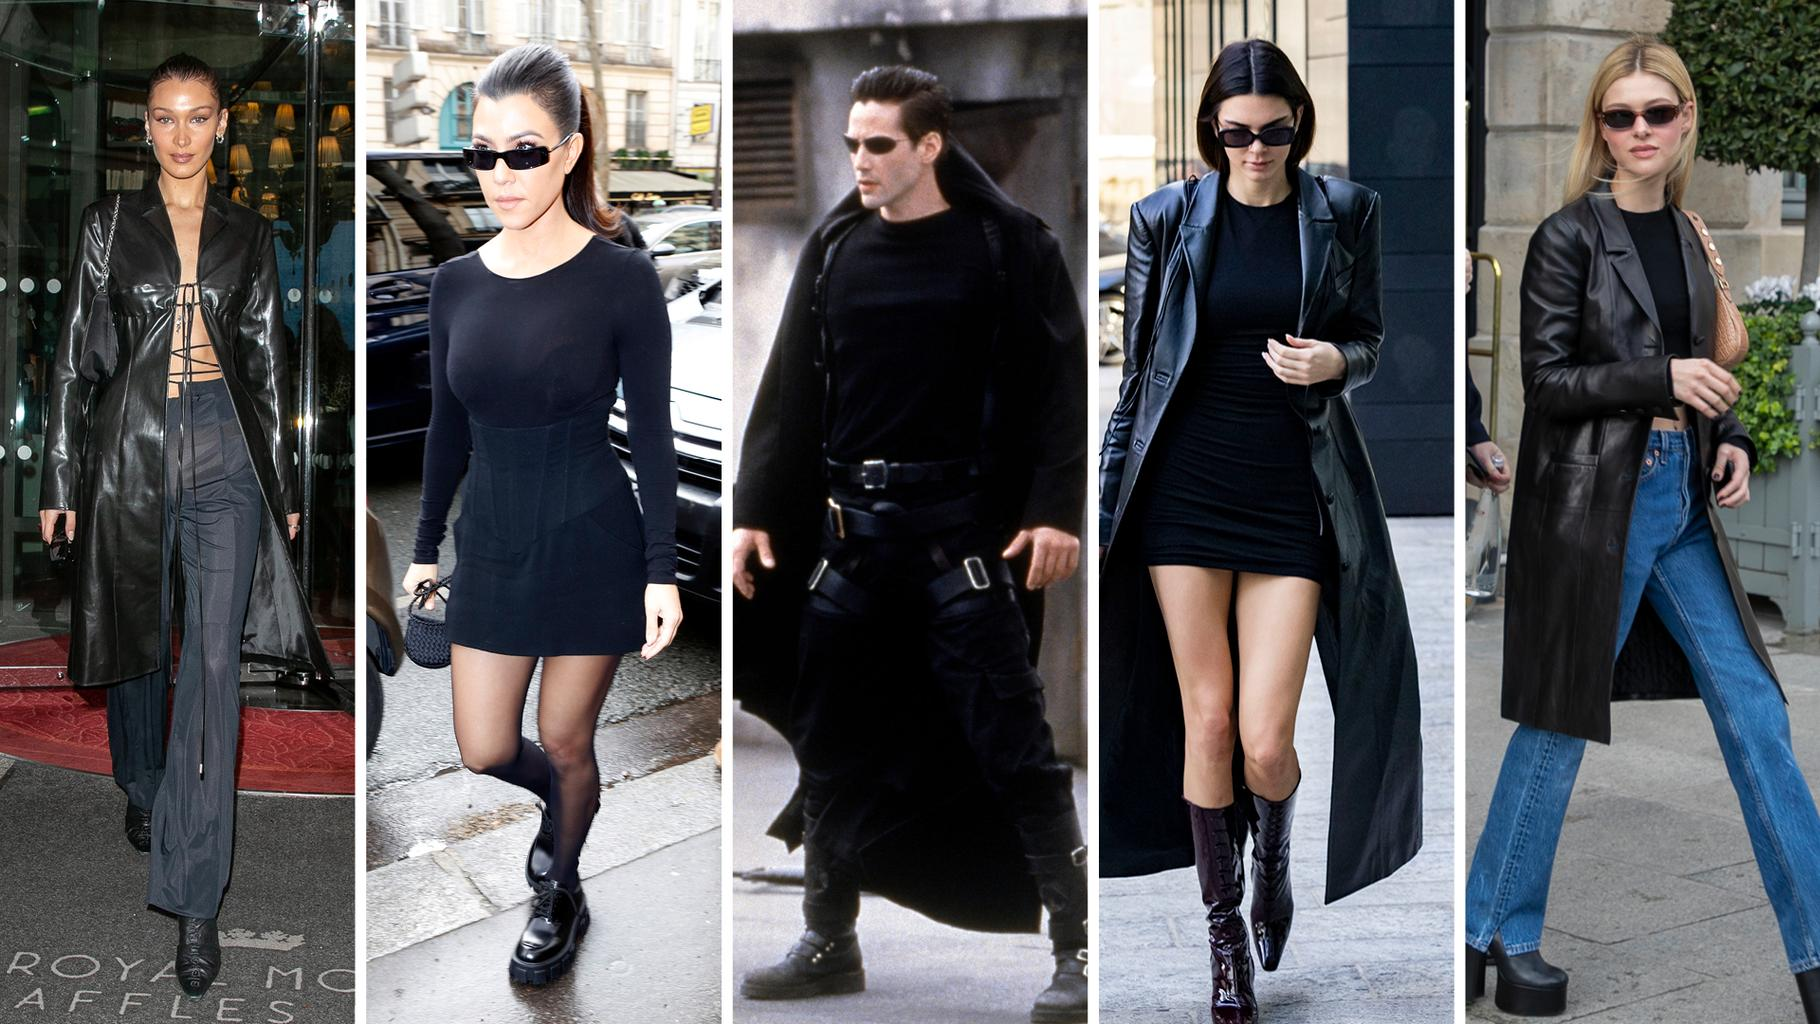 Image result for Monochrome Matrix fashion outfit